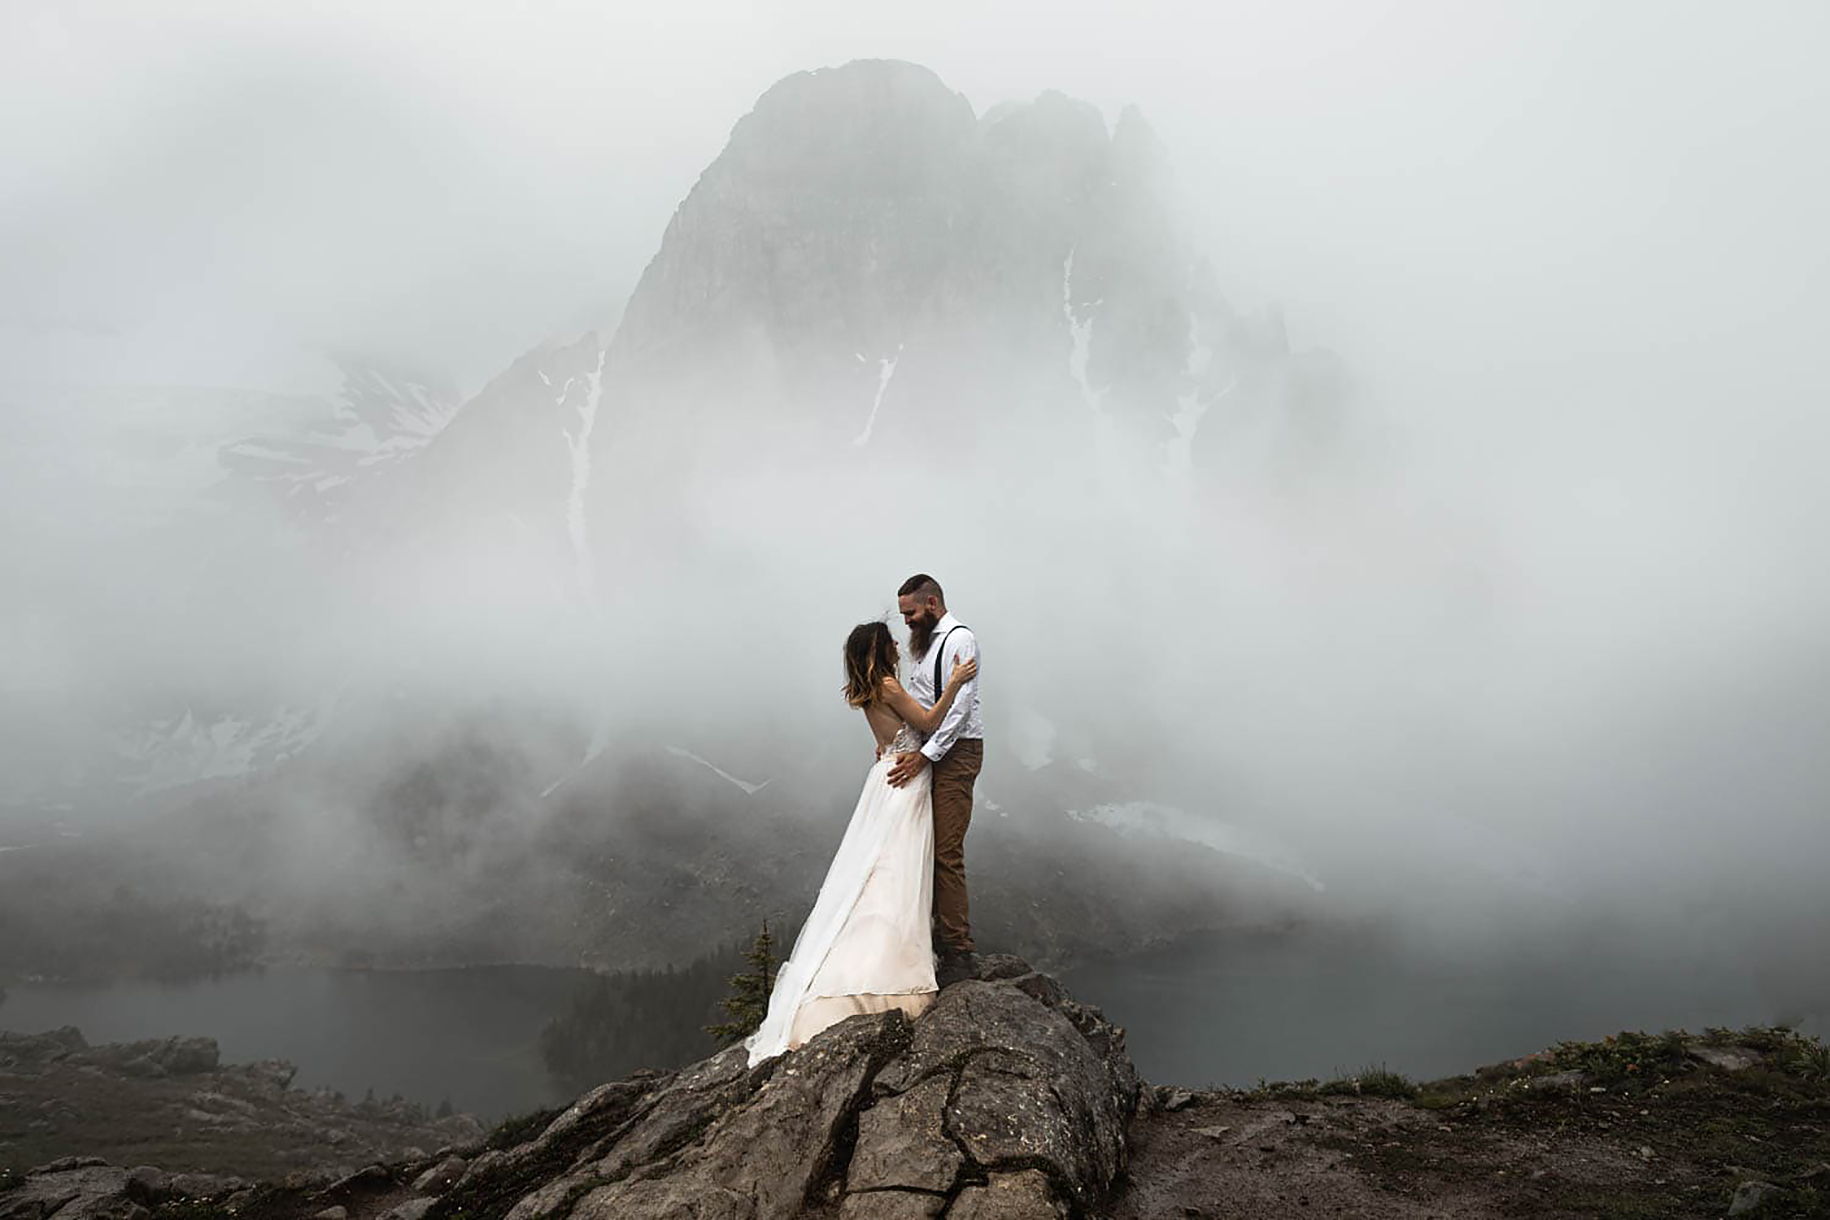 Backcountry heli Elopement Photographers